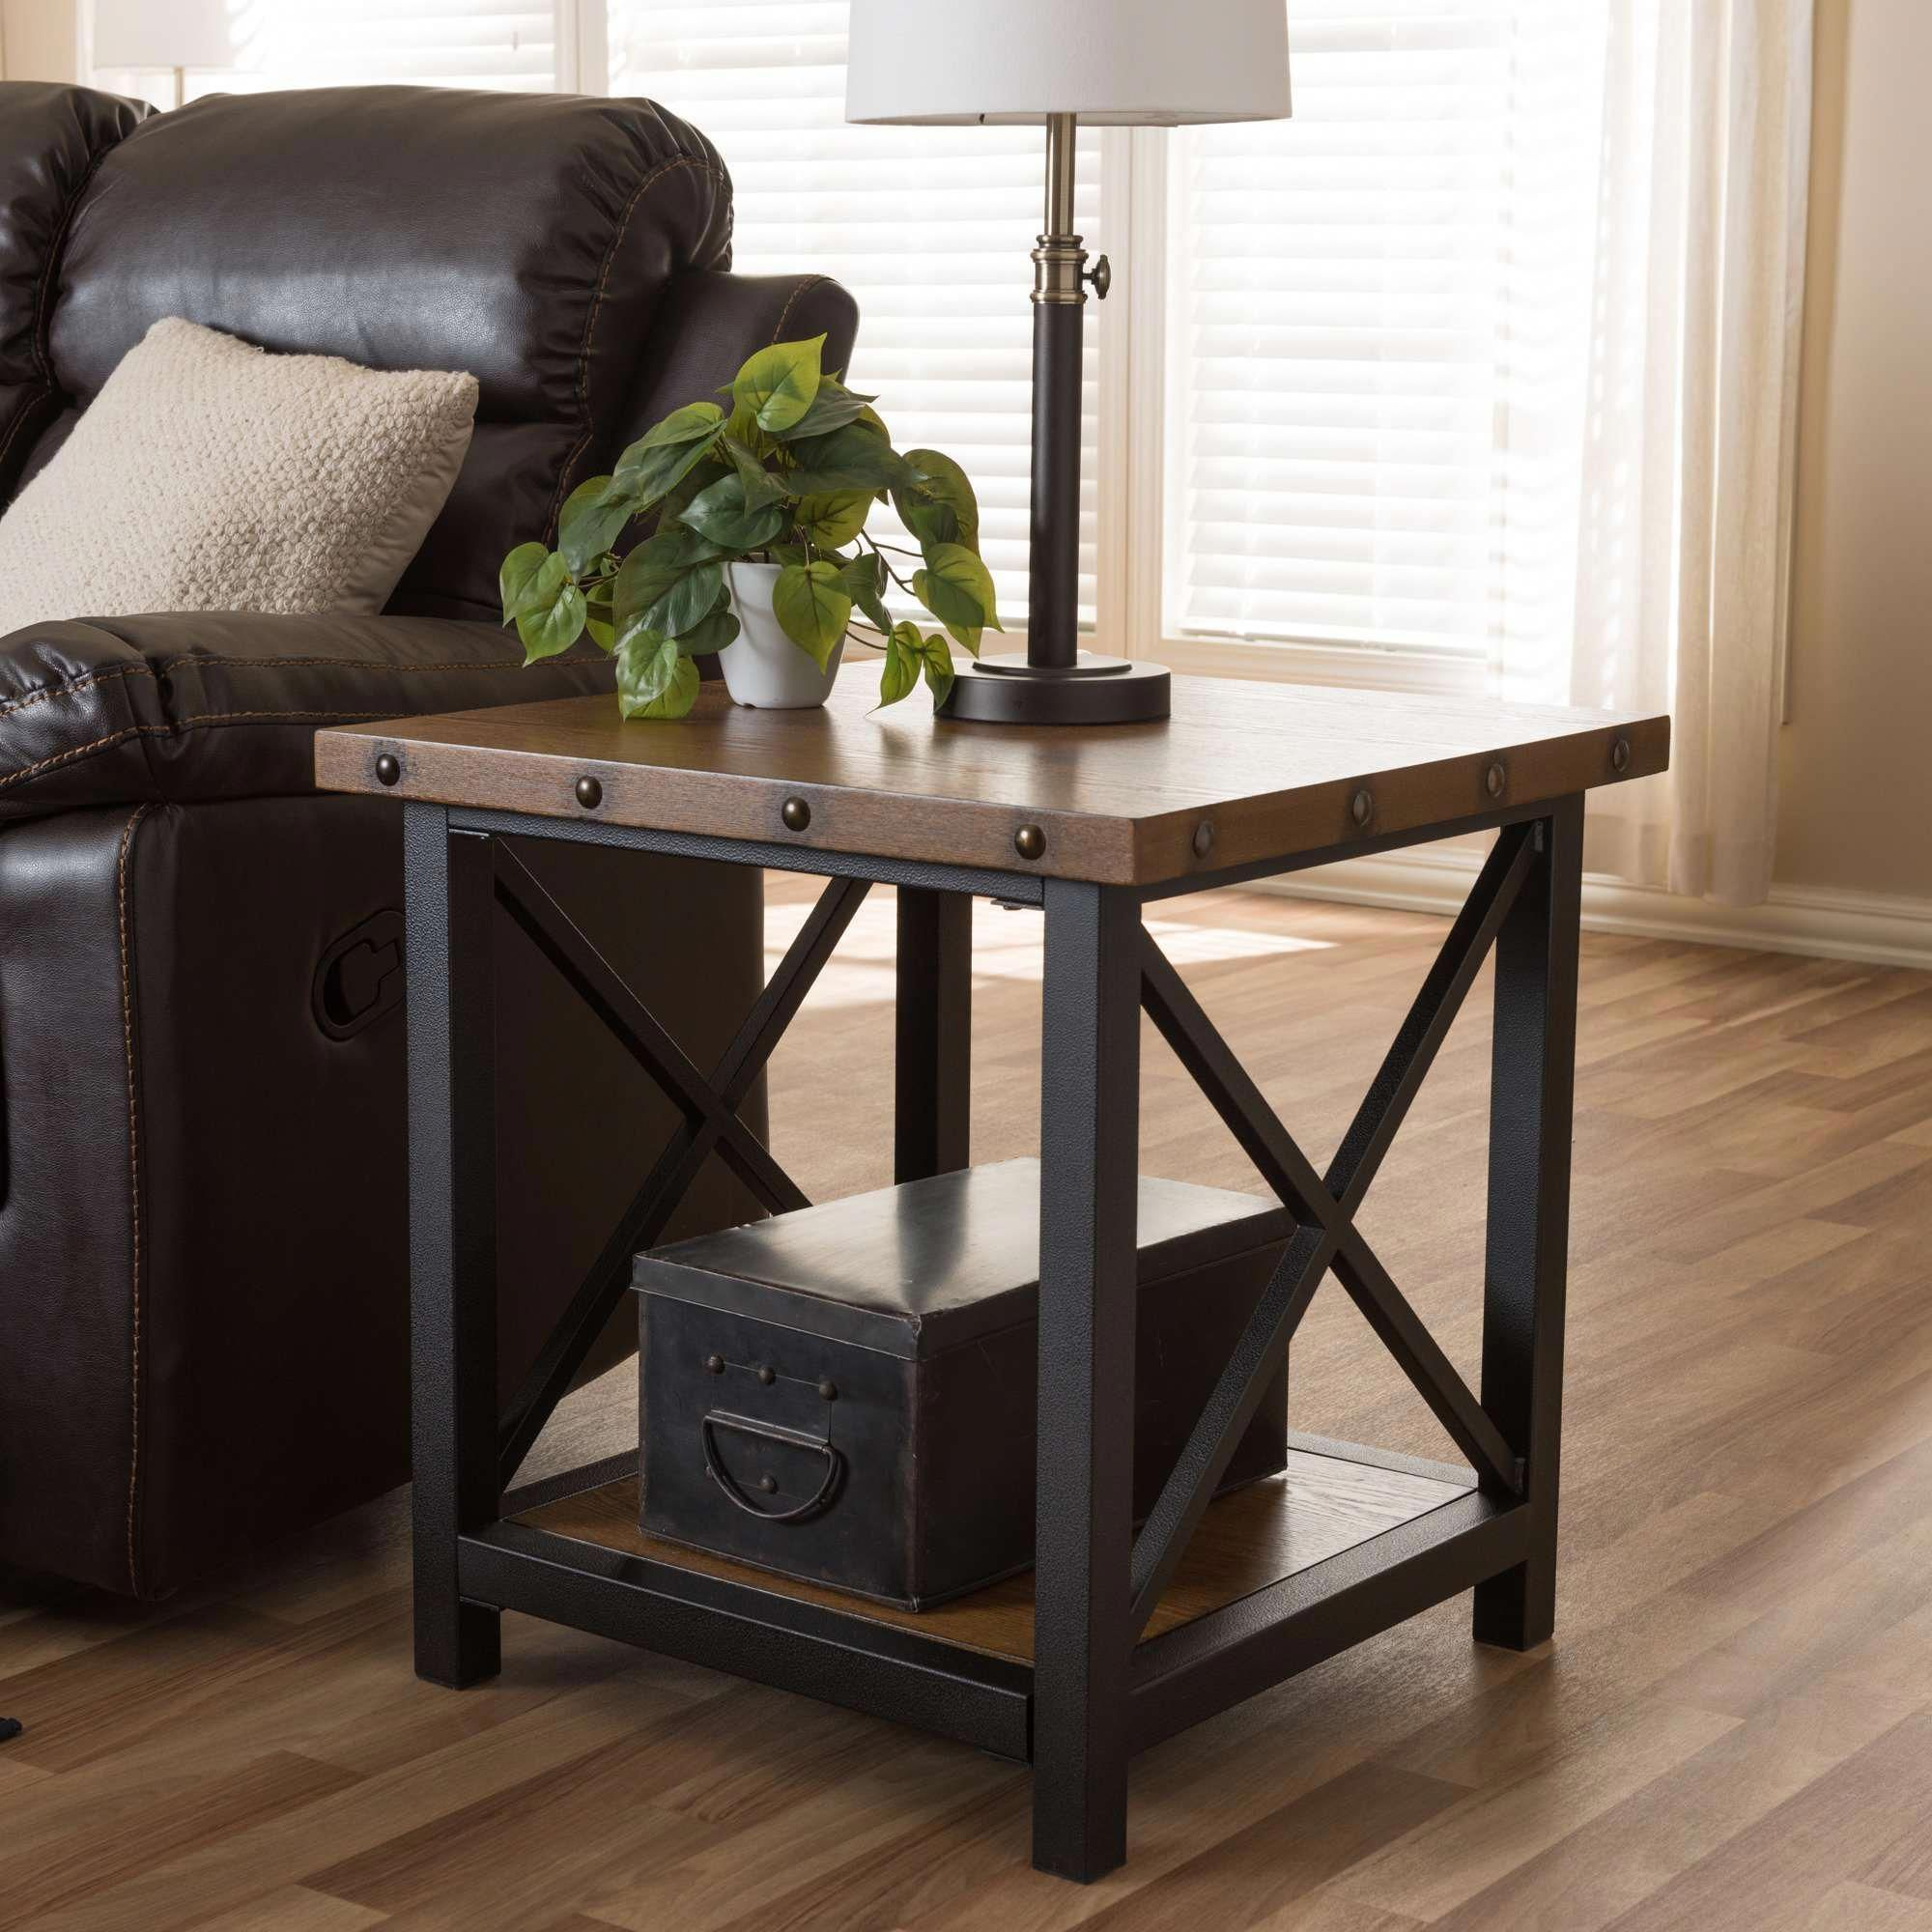 Furniture Warehouse Orlando Id 5412547870 Wood End Tables Farmhouse End Tables Industrial Style Furniture